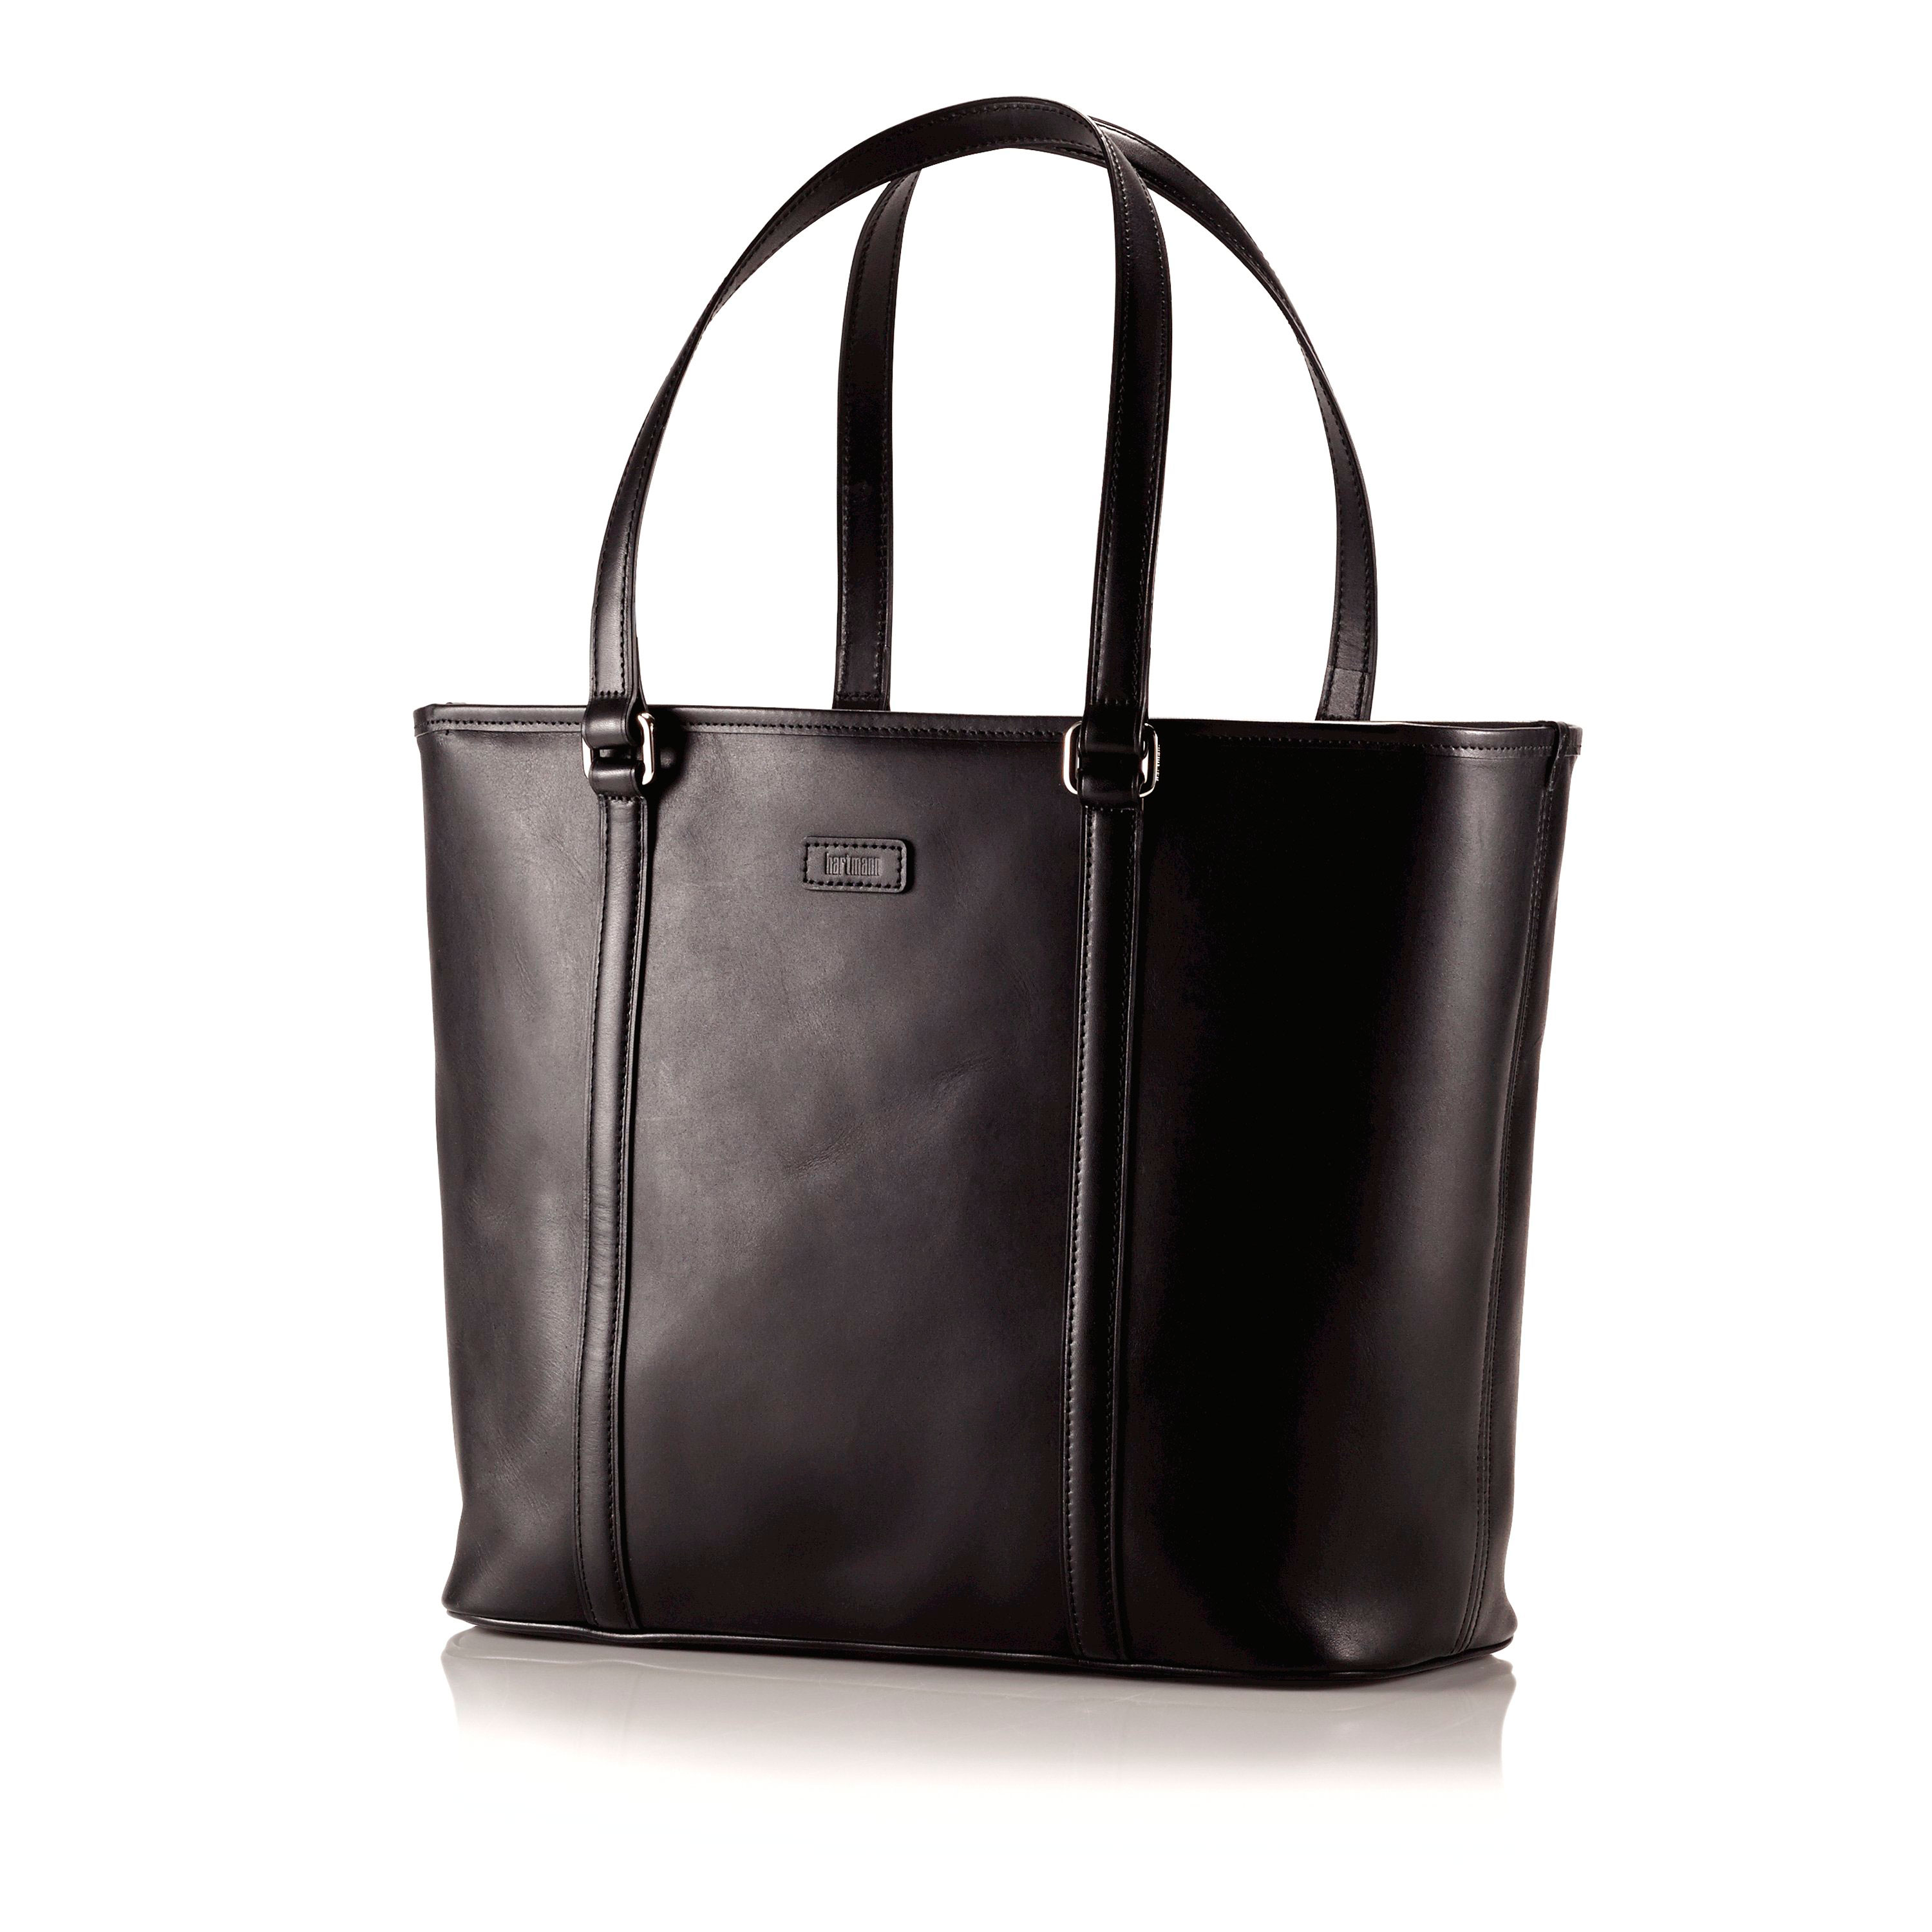 Hartmann Heritage Zippered Tote in the color Heritage Black. eb2d7f331f2c7